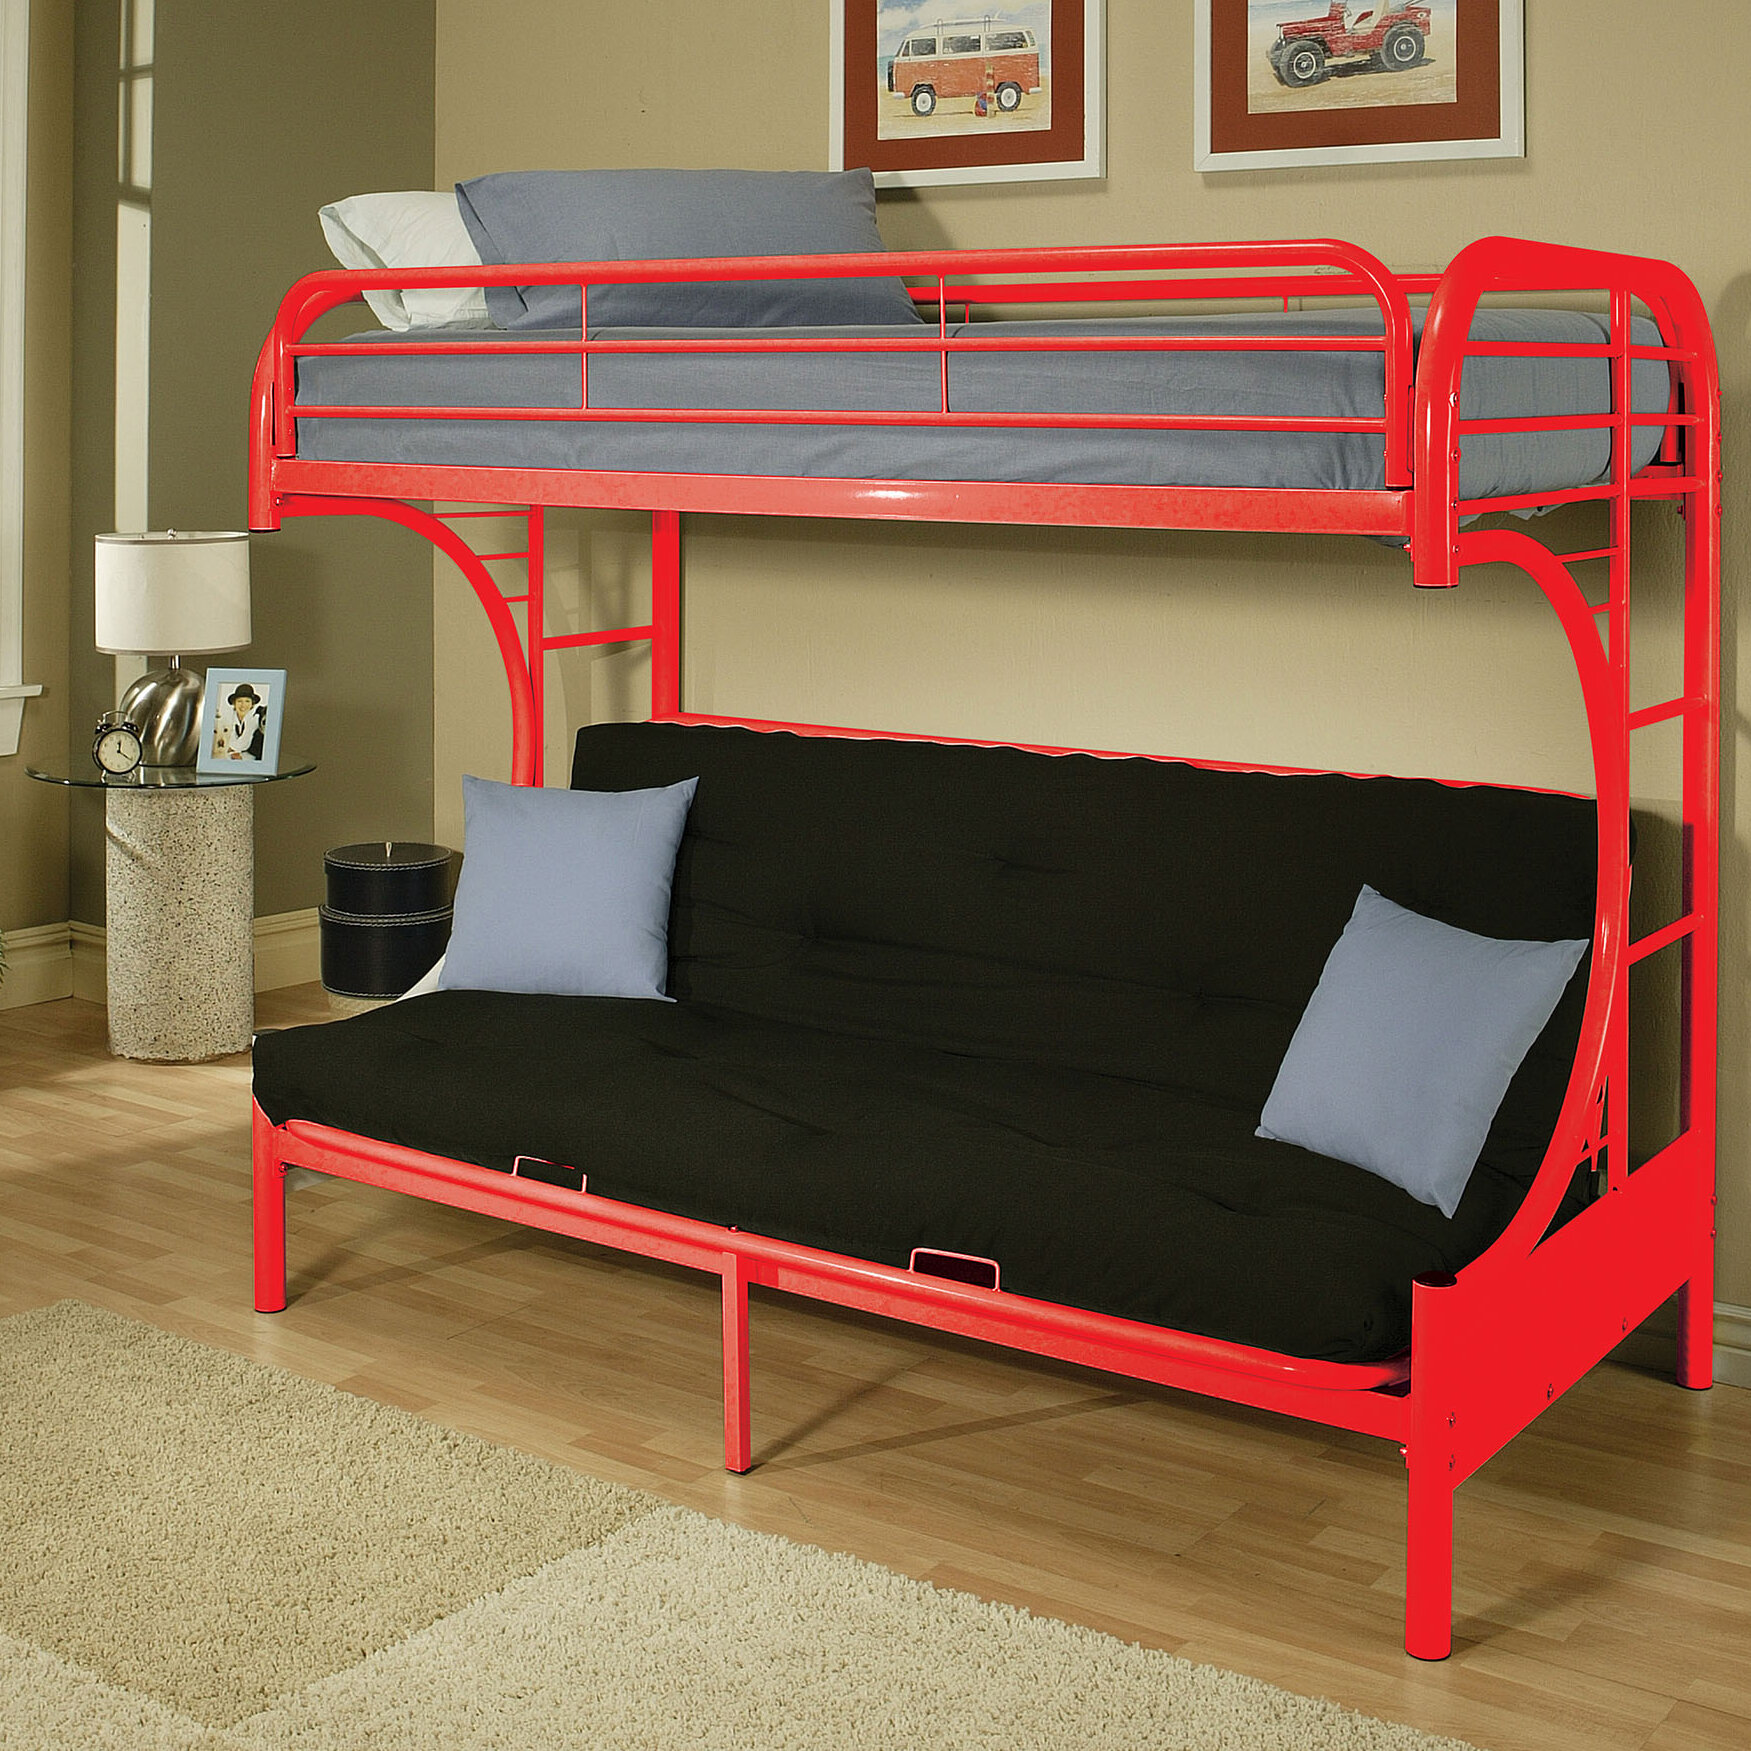 bed black futon beds bedroom twin bunk sale kid full product for btofbl wd furniture over